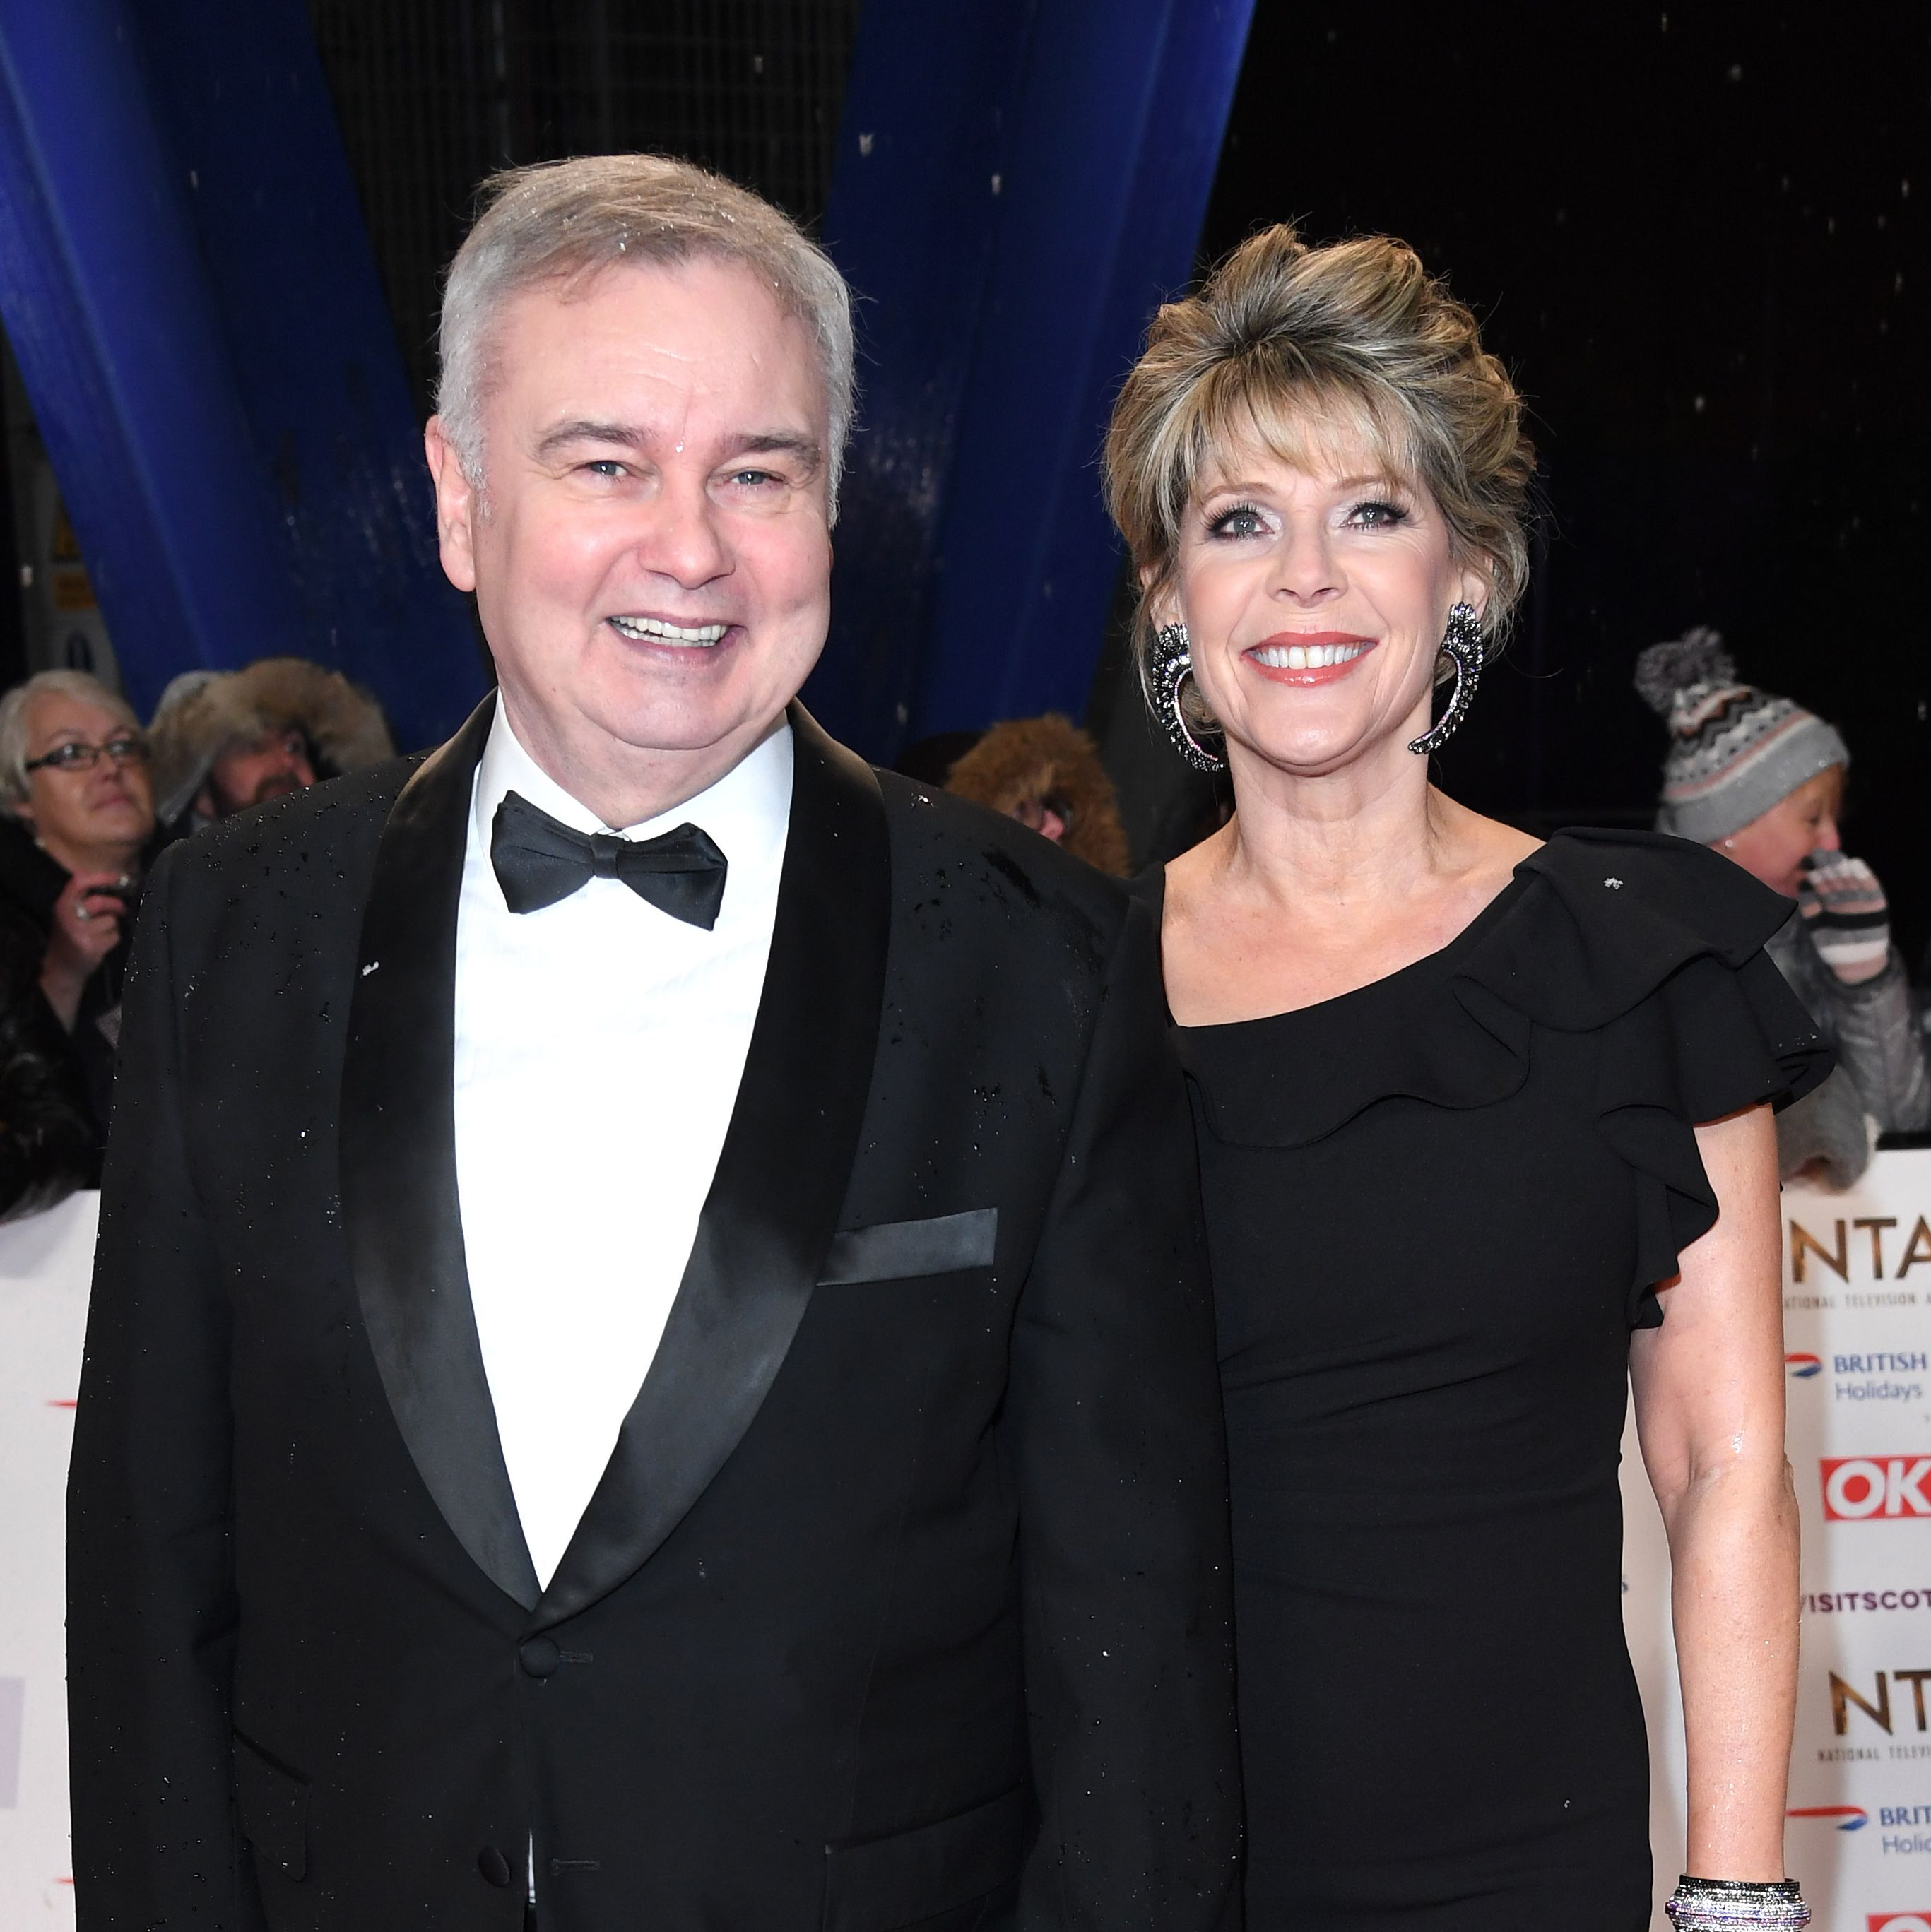 Eamonn Holmes reveals how he treated wife Ruth Langsford on her birthday